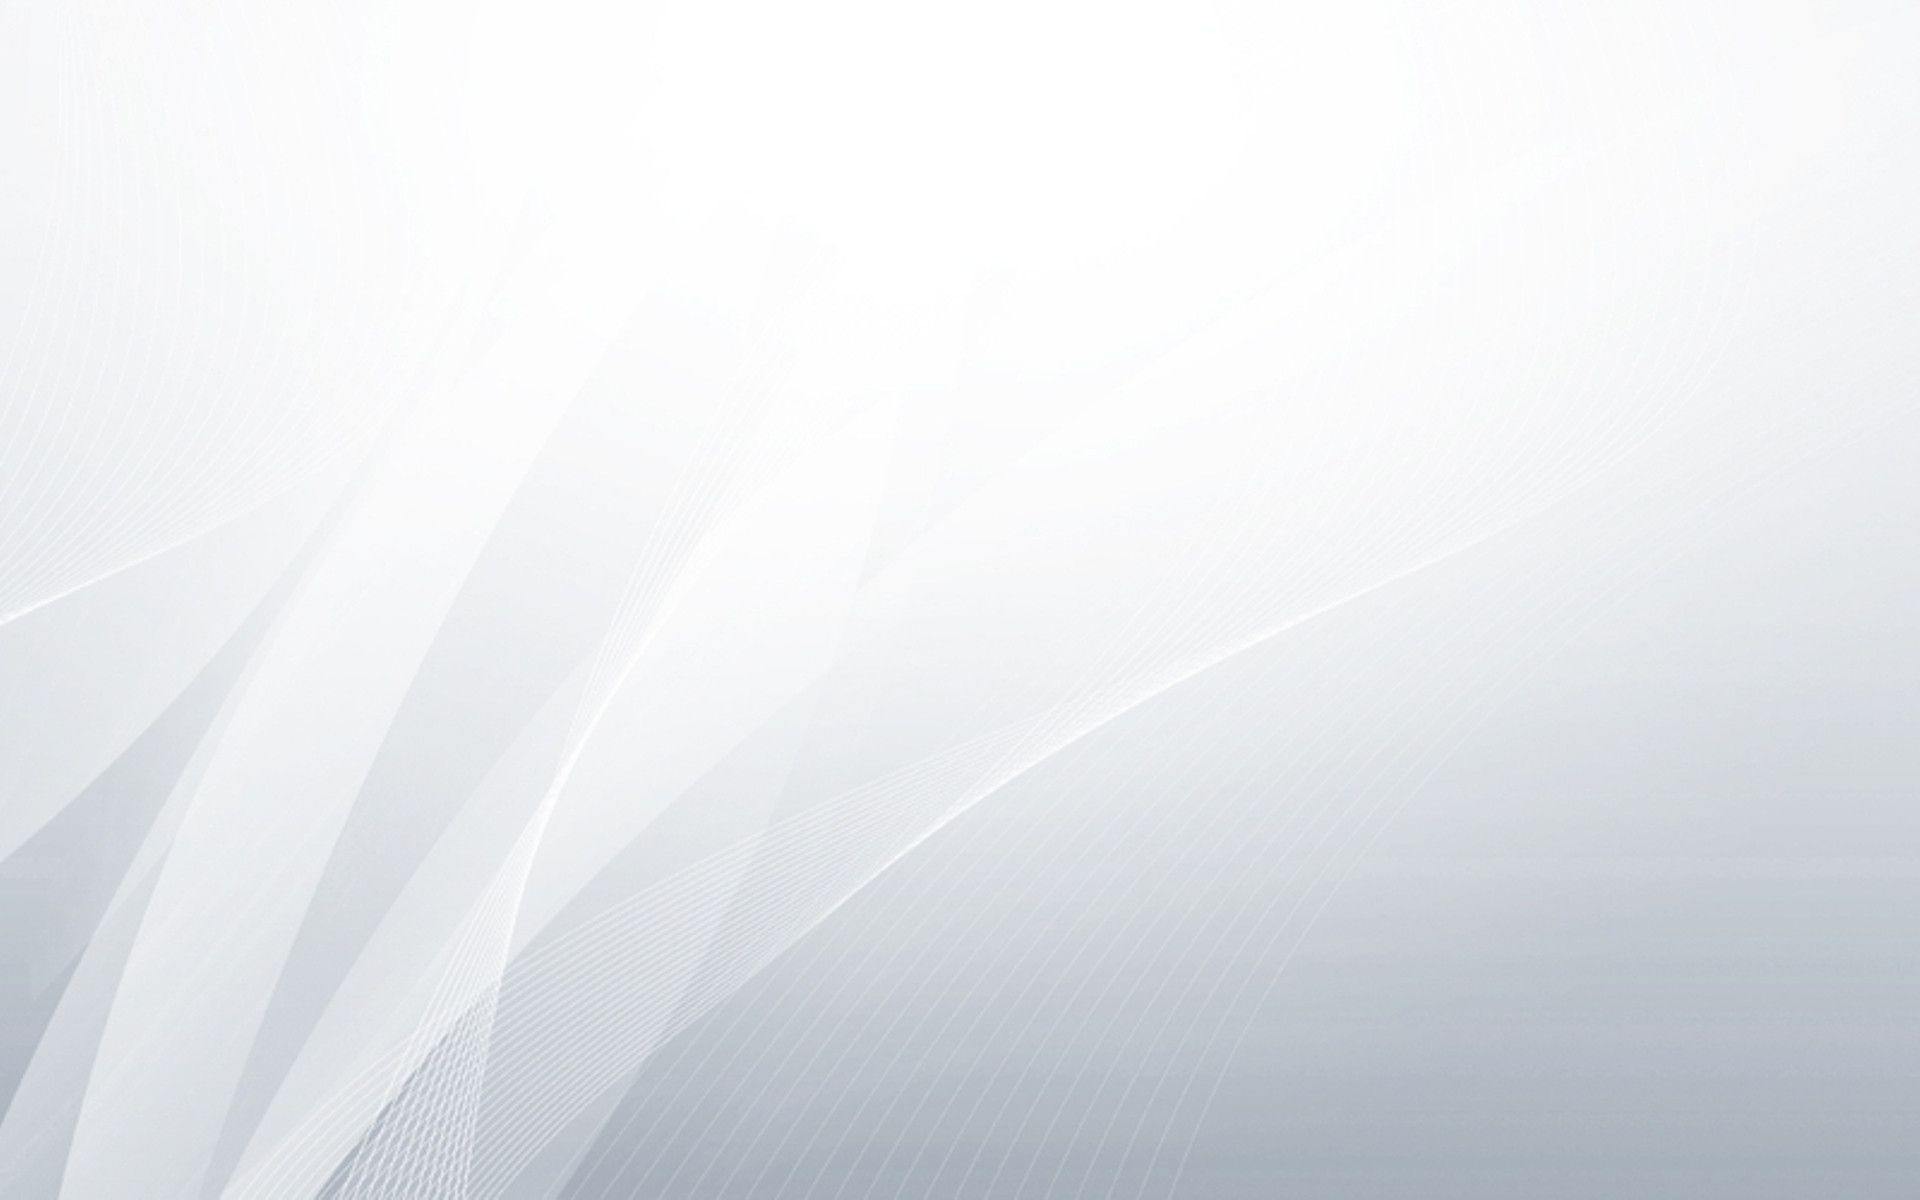 Black And White Abstract Wallpapers Wallpaper 1440 900 White